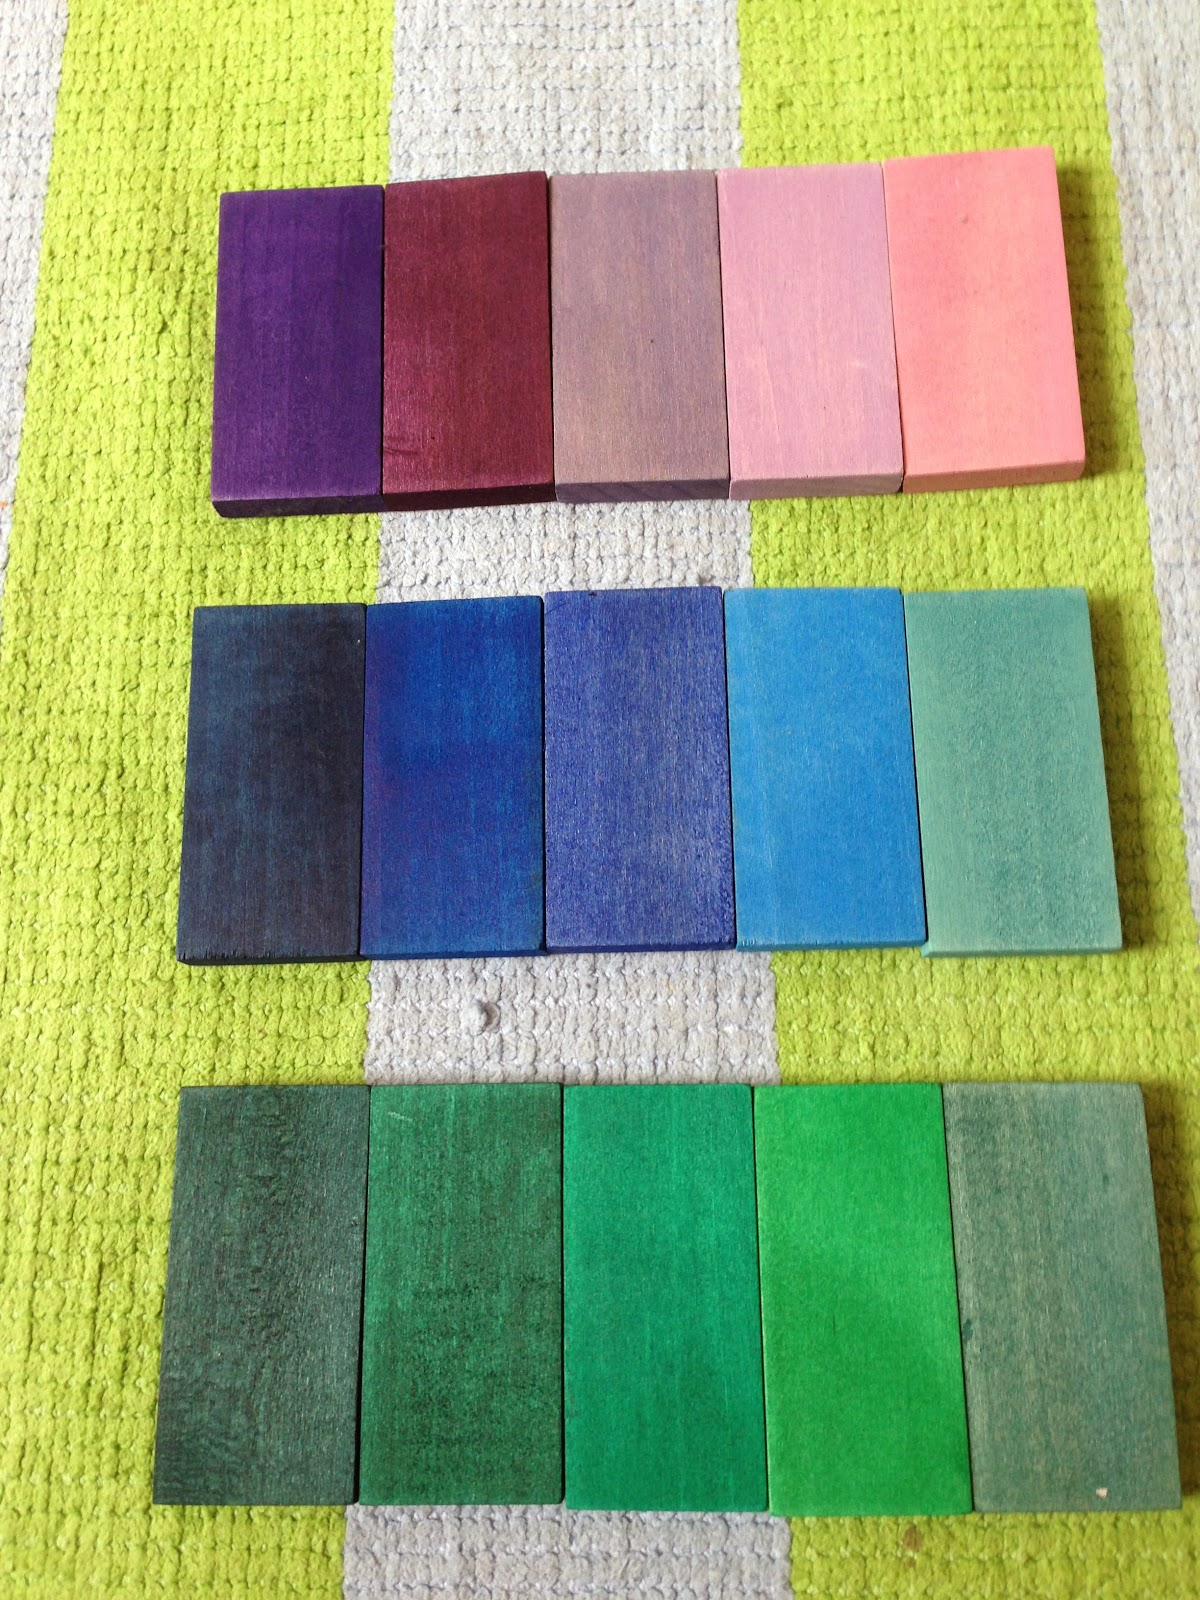 Colour shades activities - Montessori Inspired Colour Grading Activity